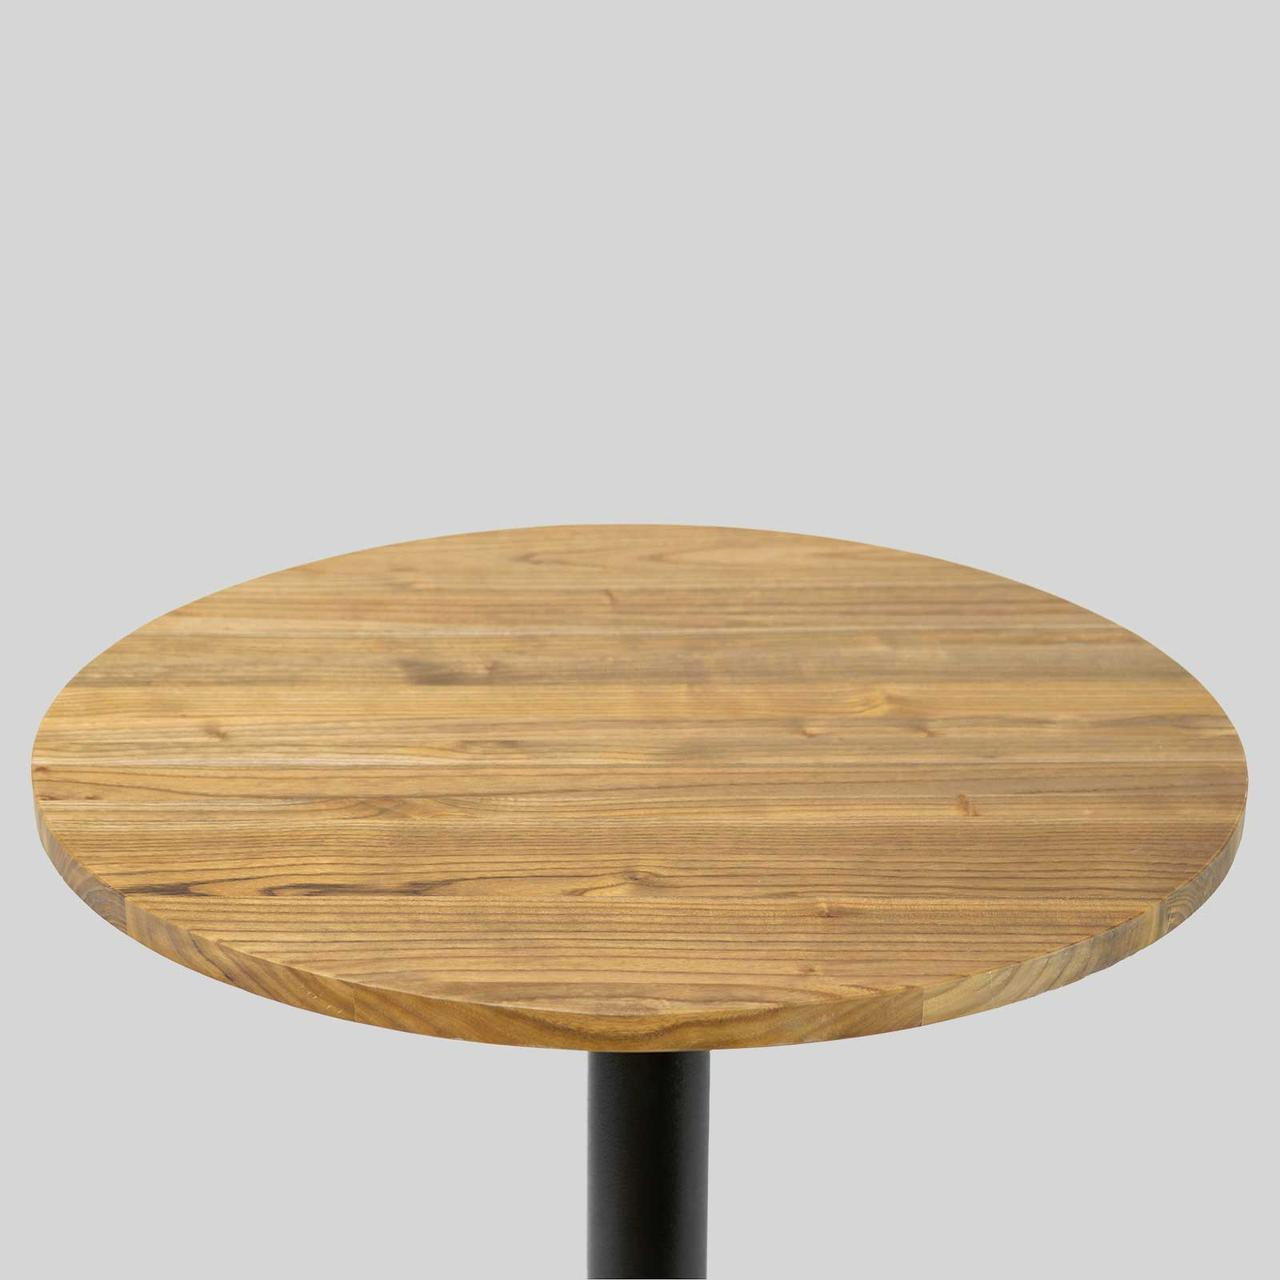 elm_timber_table_top_700dia_natural_ta.jpg